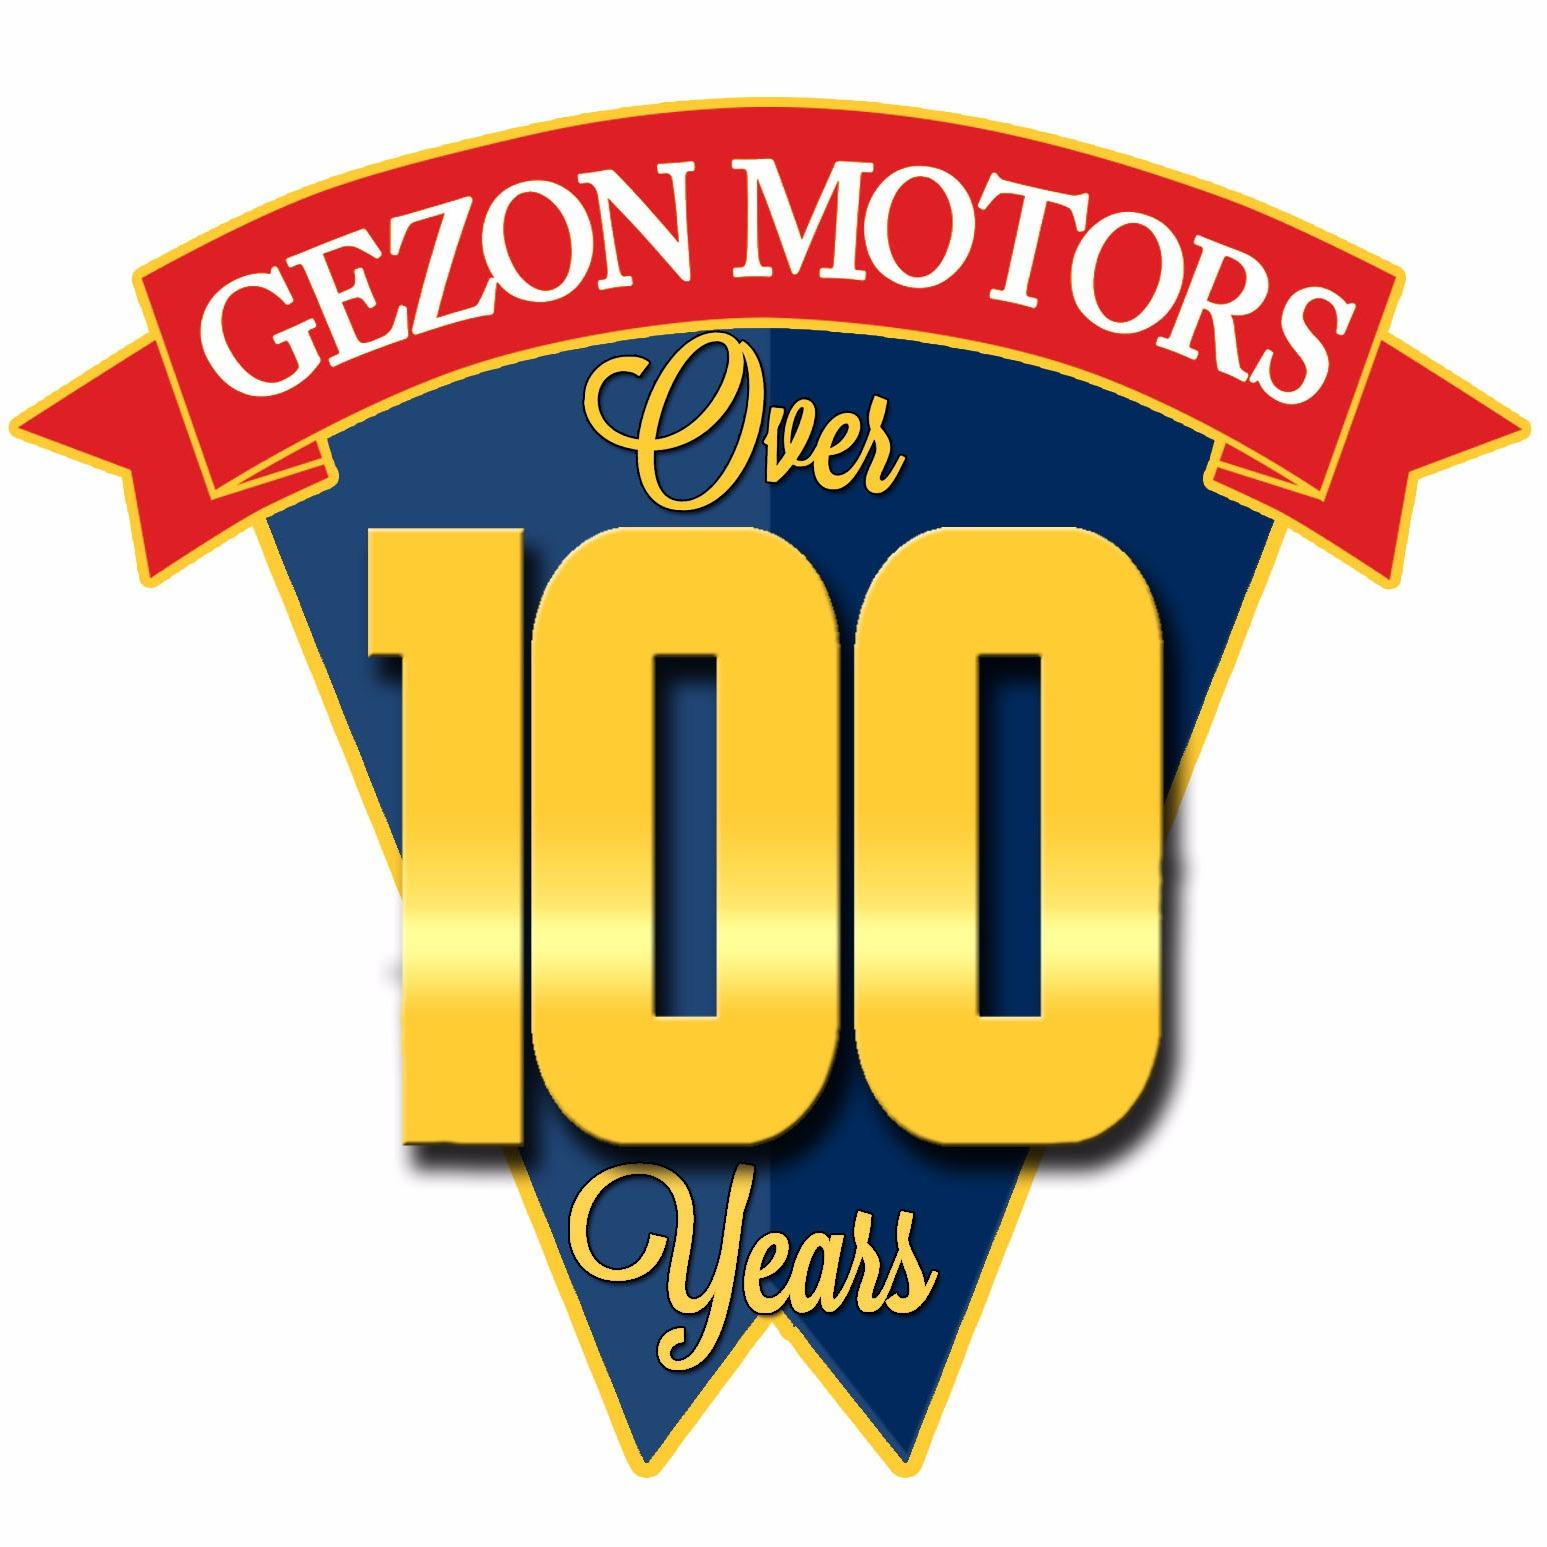 Gezon Nissan In Grand Rapids Mi Auto Dealers Yellow